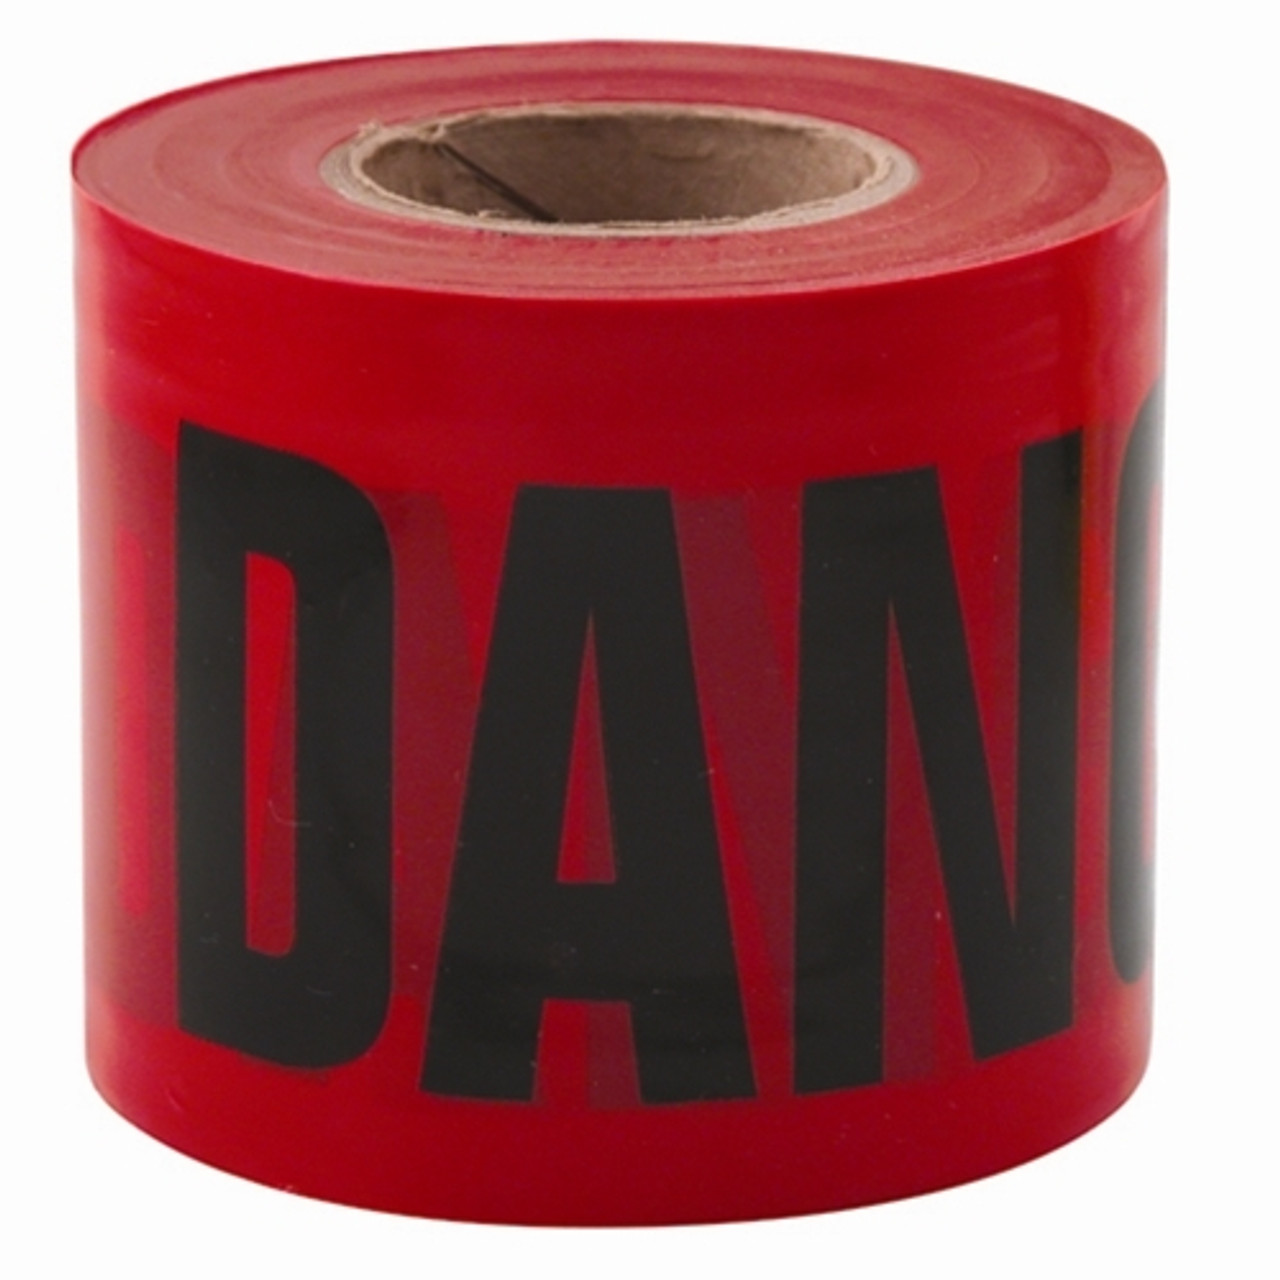 Empire 77-0204 DANGER/PELIGRO Barricade Tape Red 3 in. x 200 ft.